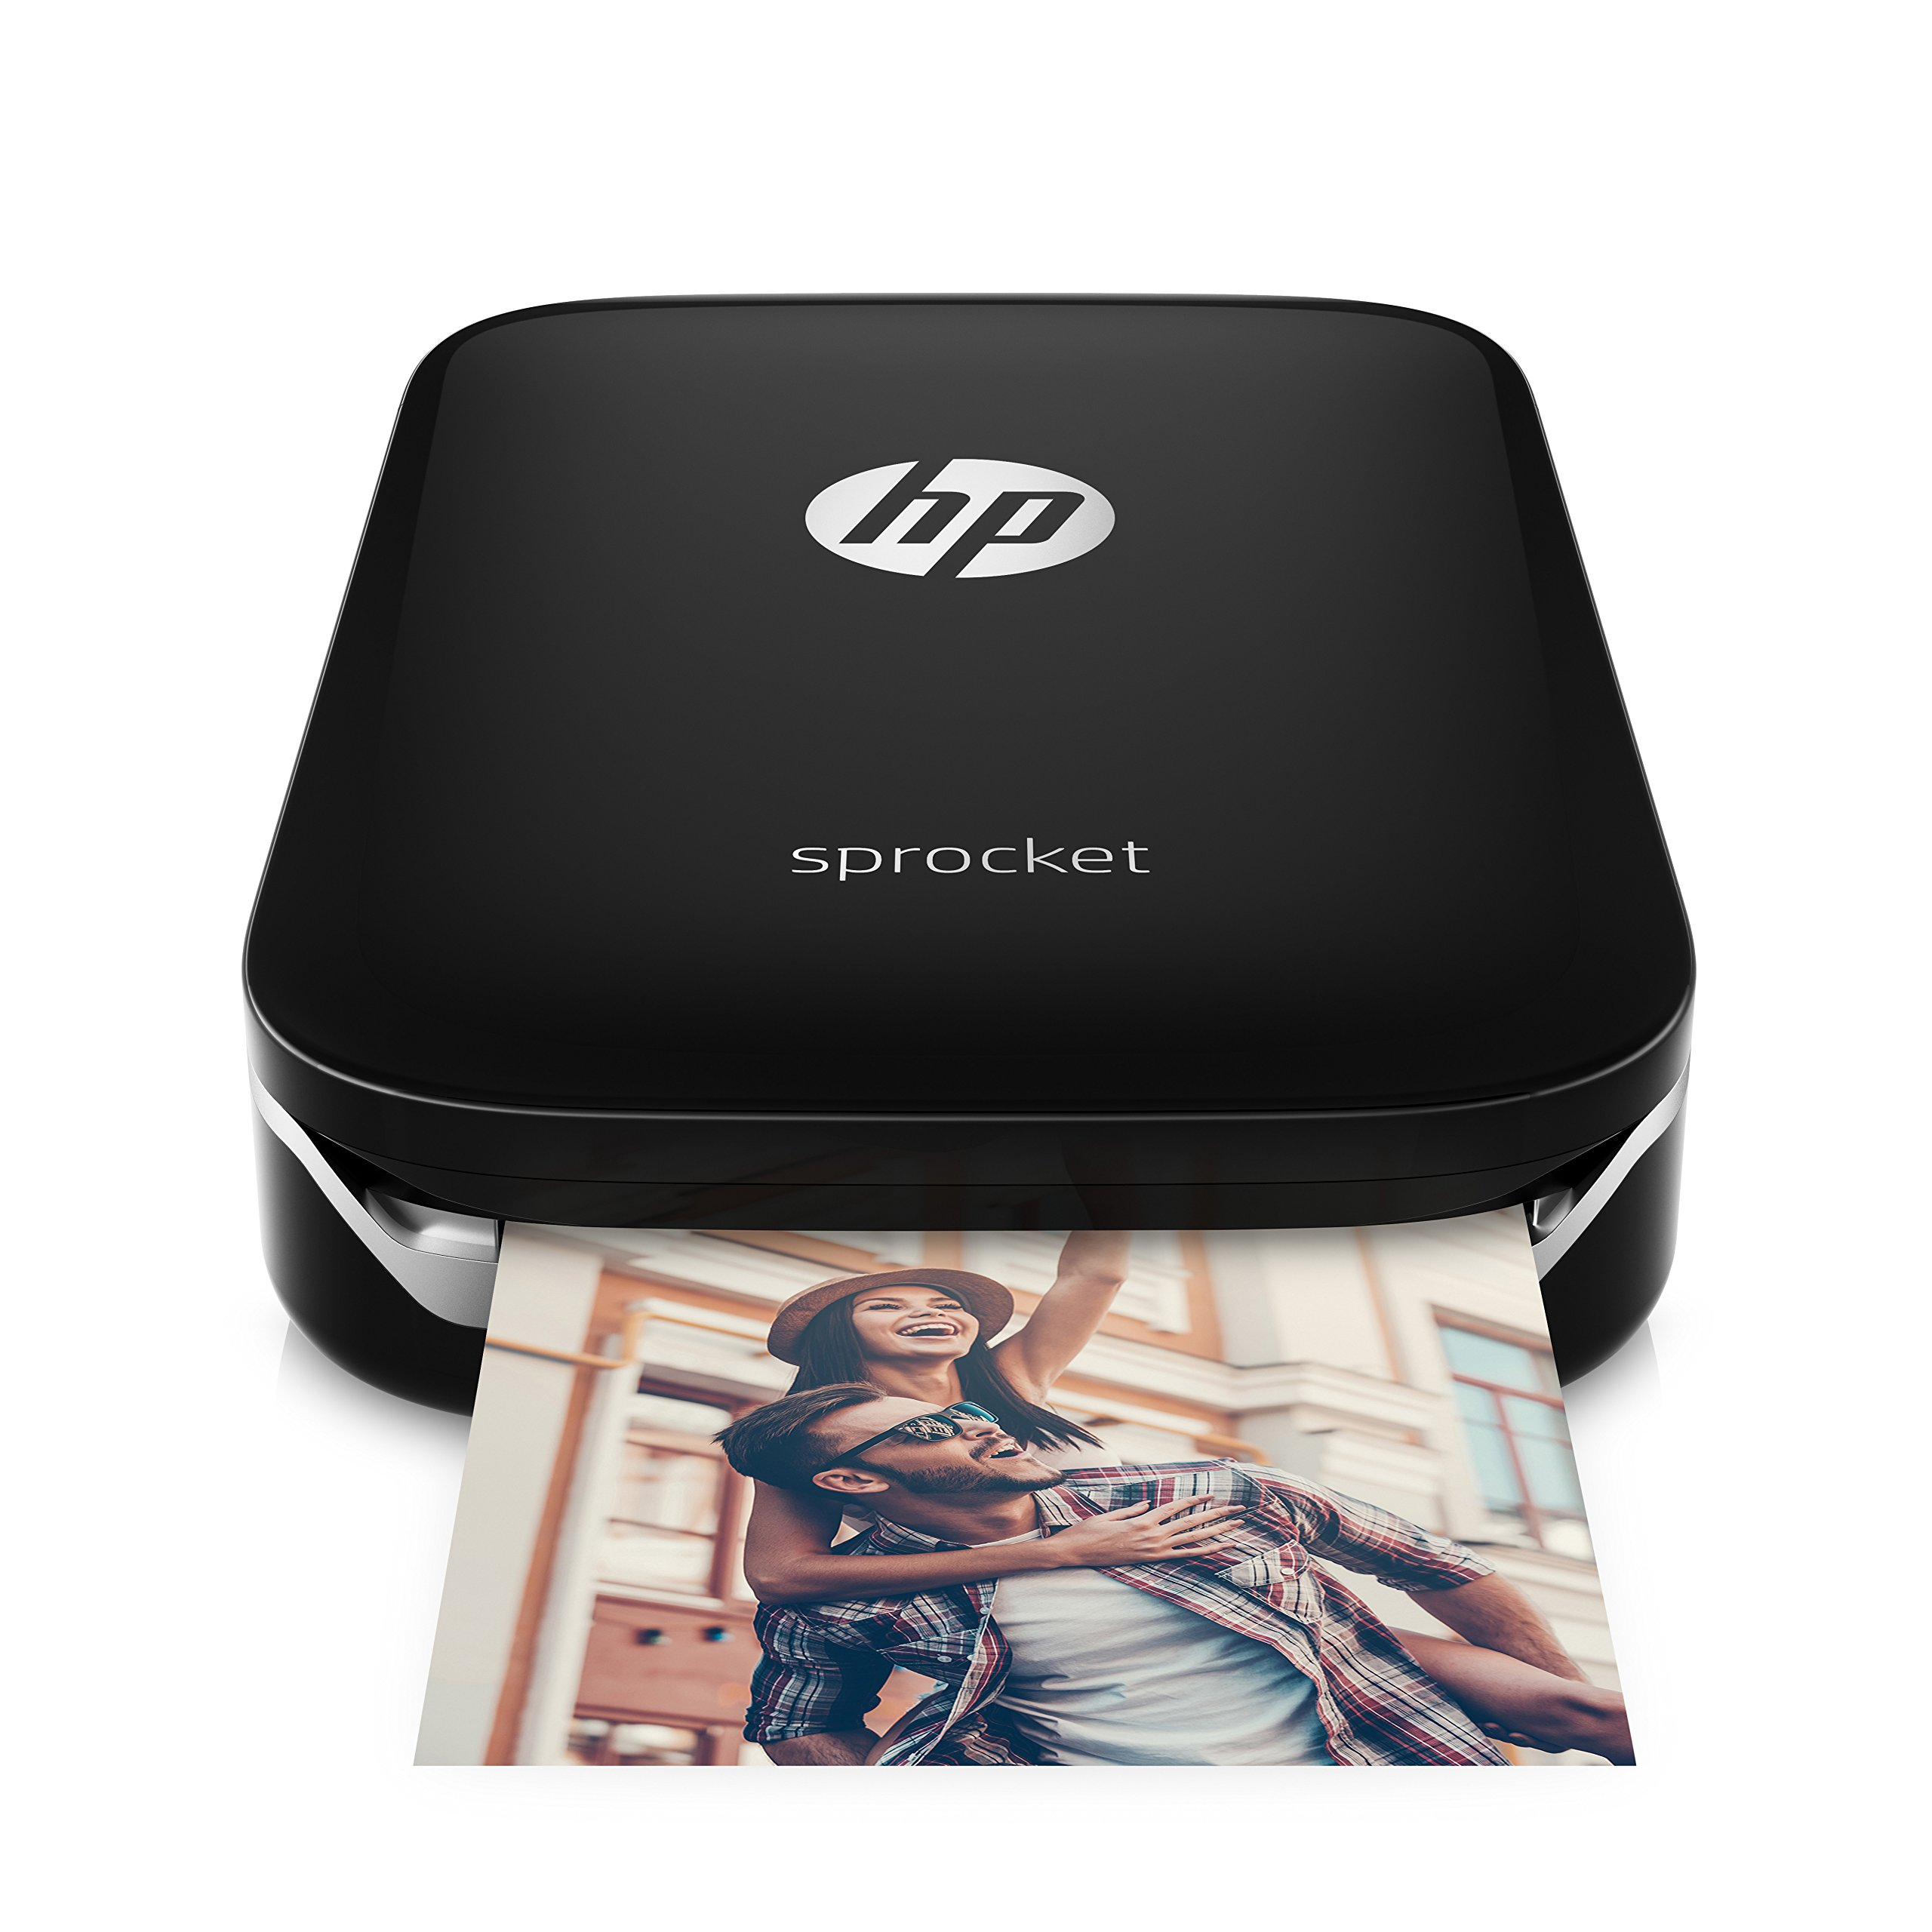 HP Sprocket Portable Photo Printer, print social media photos on 2x3 sticky-backed paper - black (X7N08A)